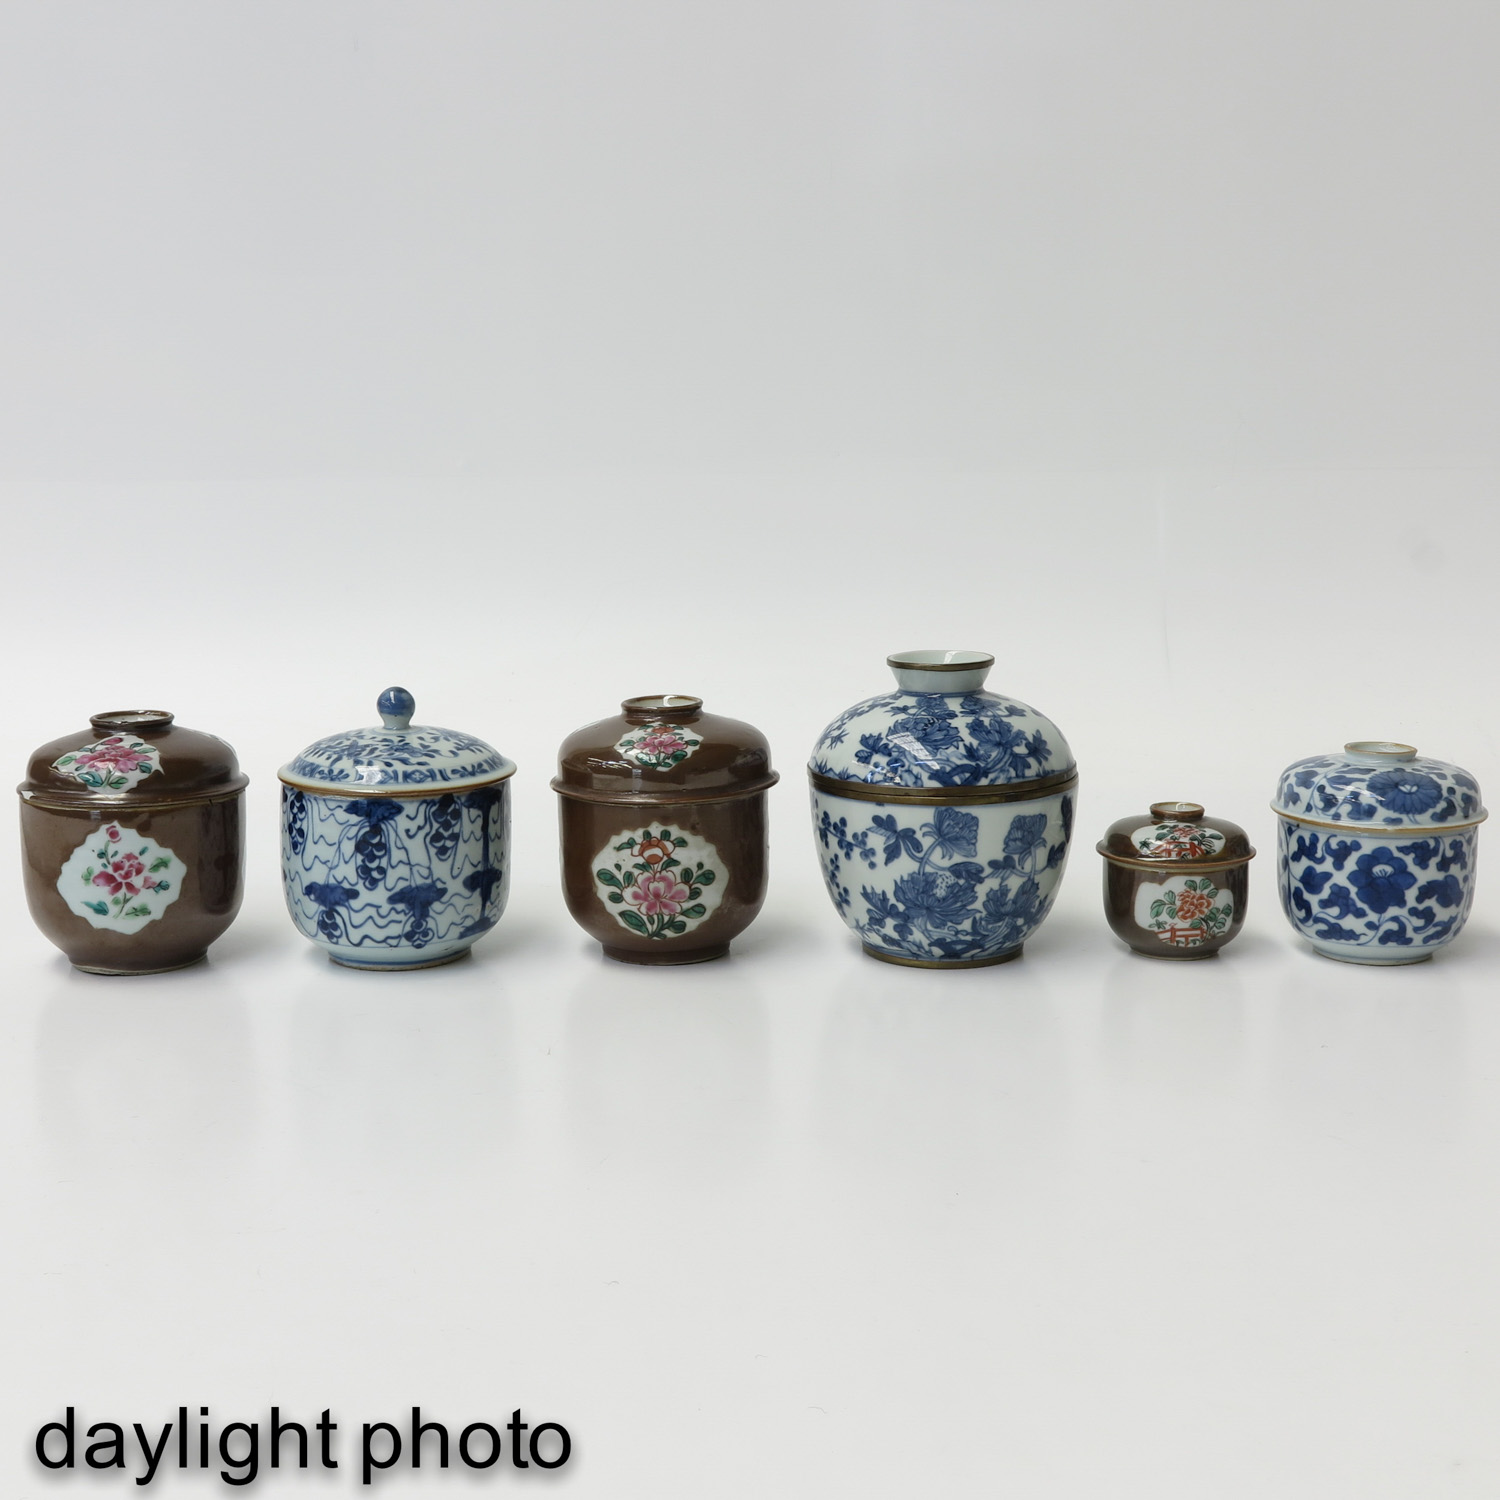 A Collection of Jars with Covers - Image 7 of 10